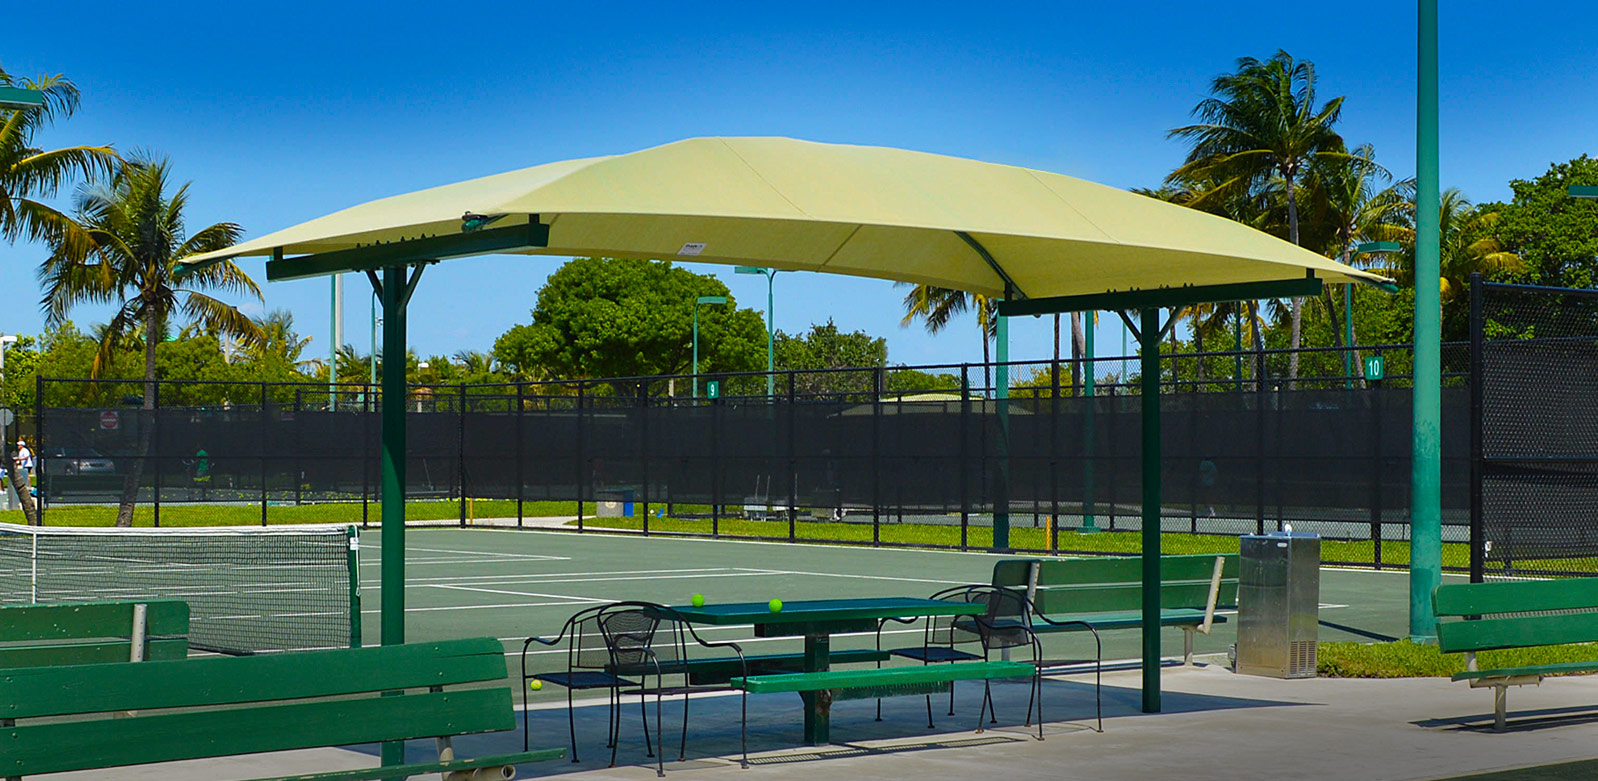 Fabric Canopy Structures At Baseball : Shade systems for sun protection at bleachers dugouts